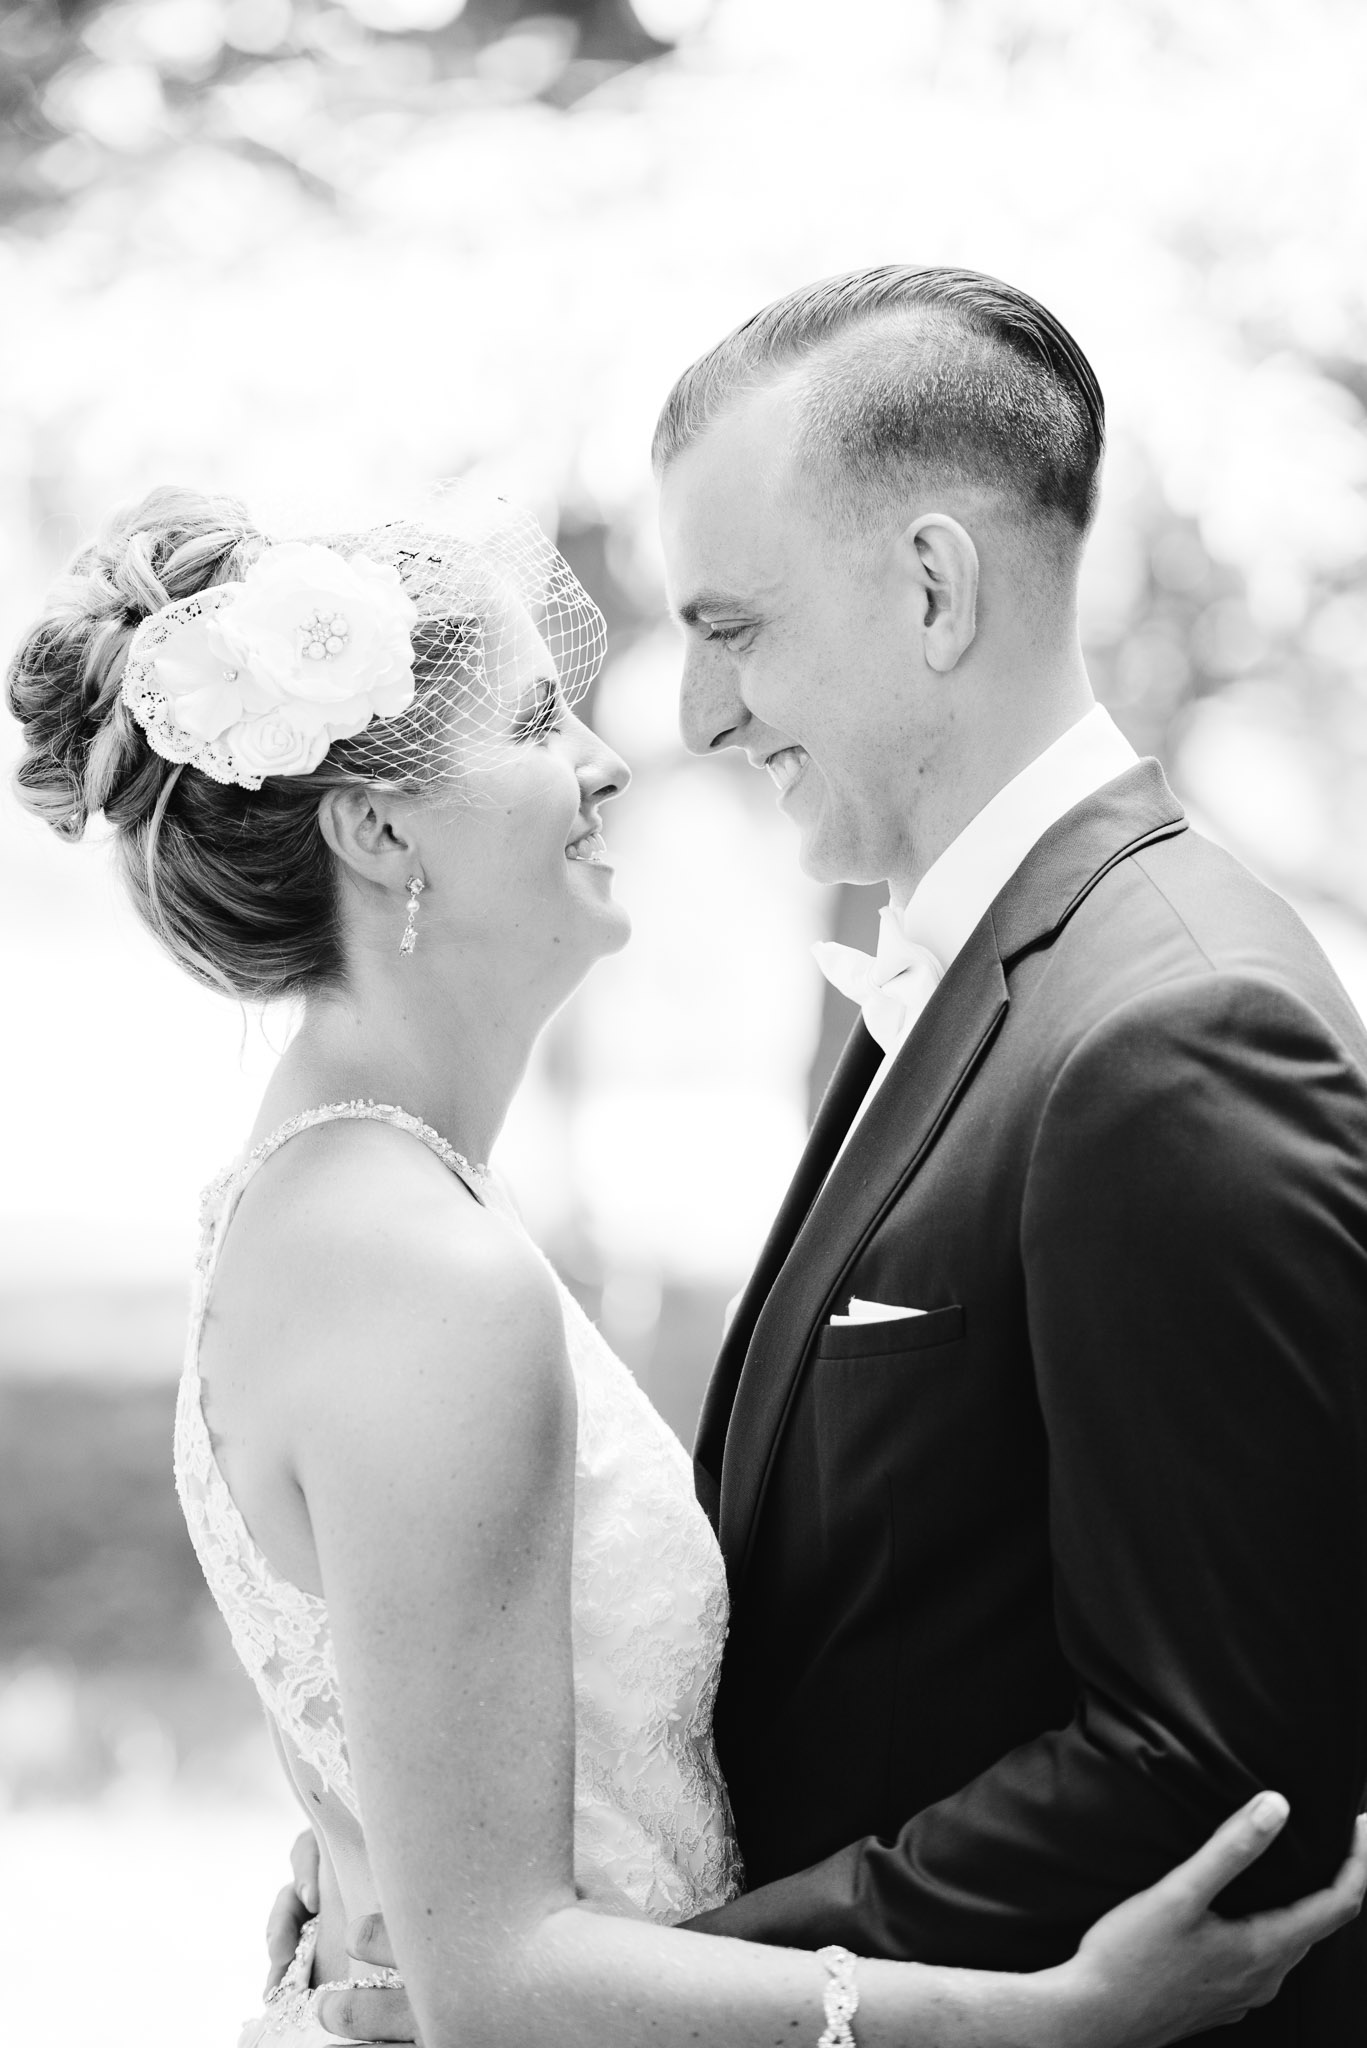 Bridal Portraits, Bride and Groom Foggy Mountain Stahlstown PA Wedding Photography-3604.jpg